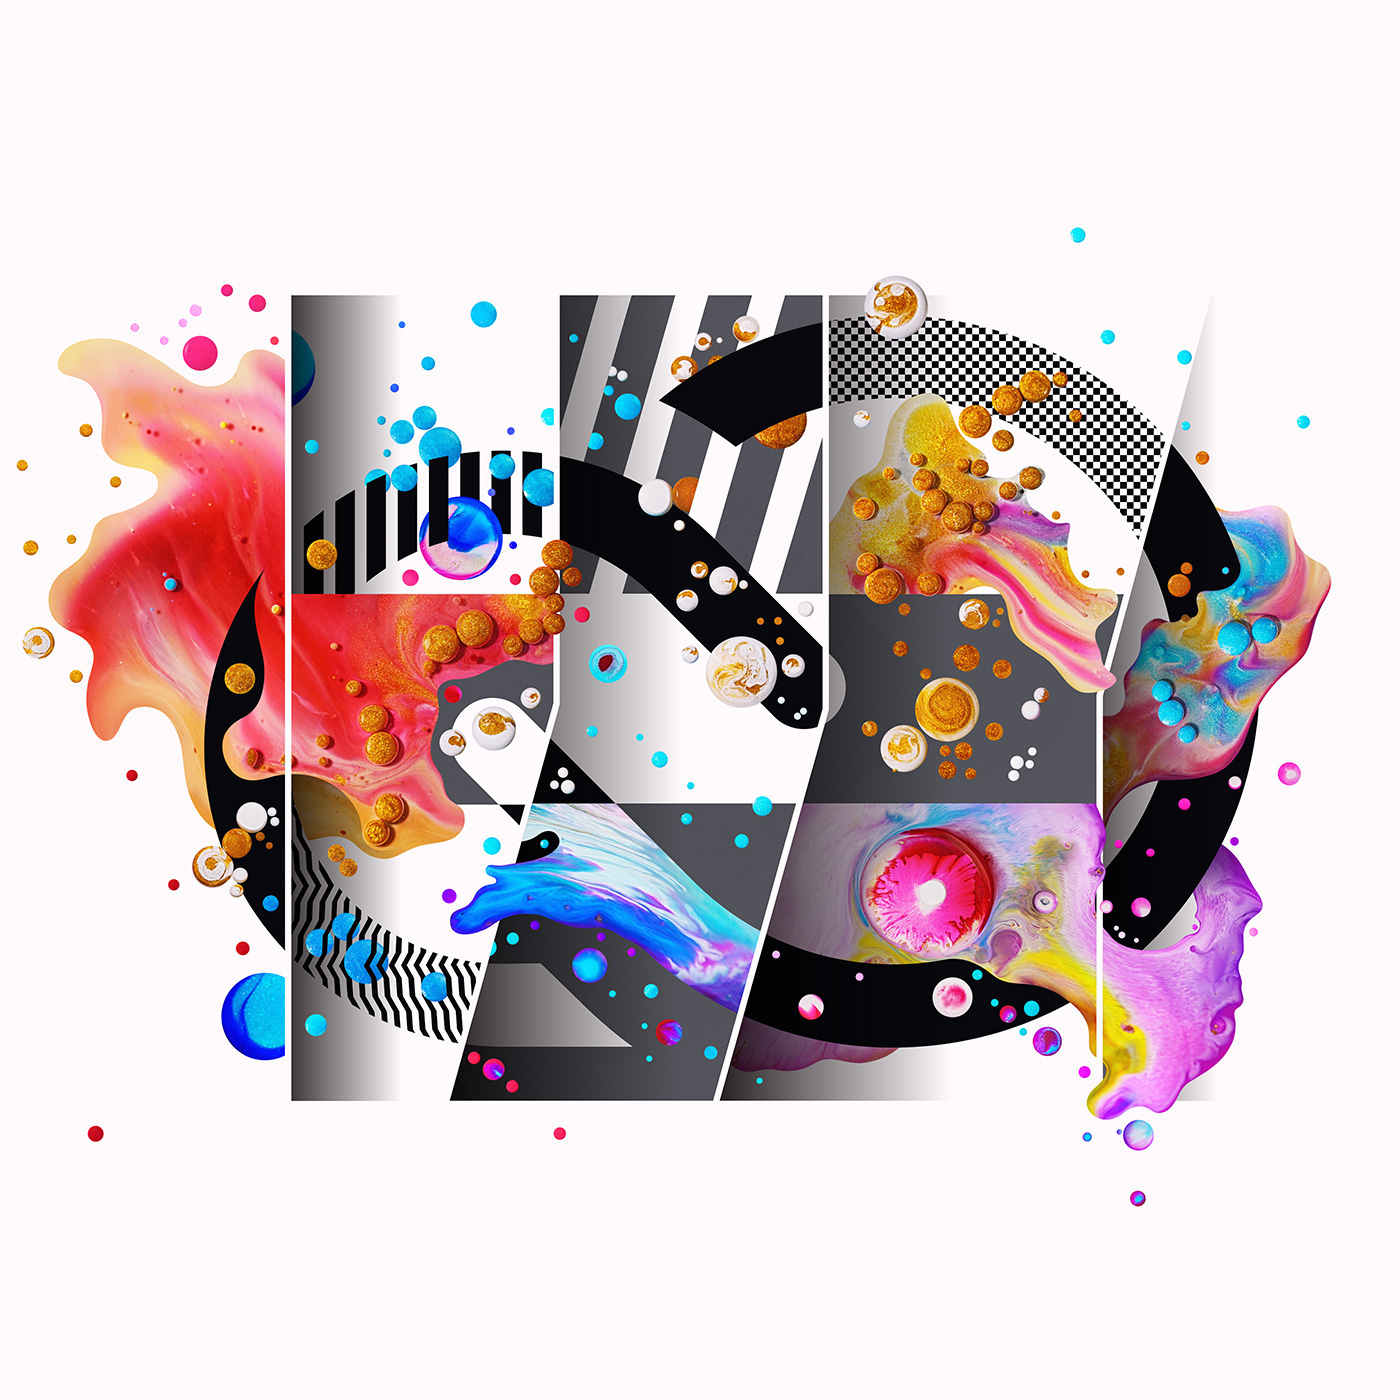 Artwork composed of graphic shapes, photography, digital painting and patterns